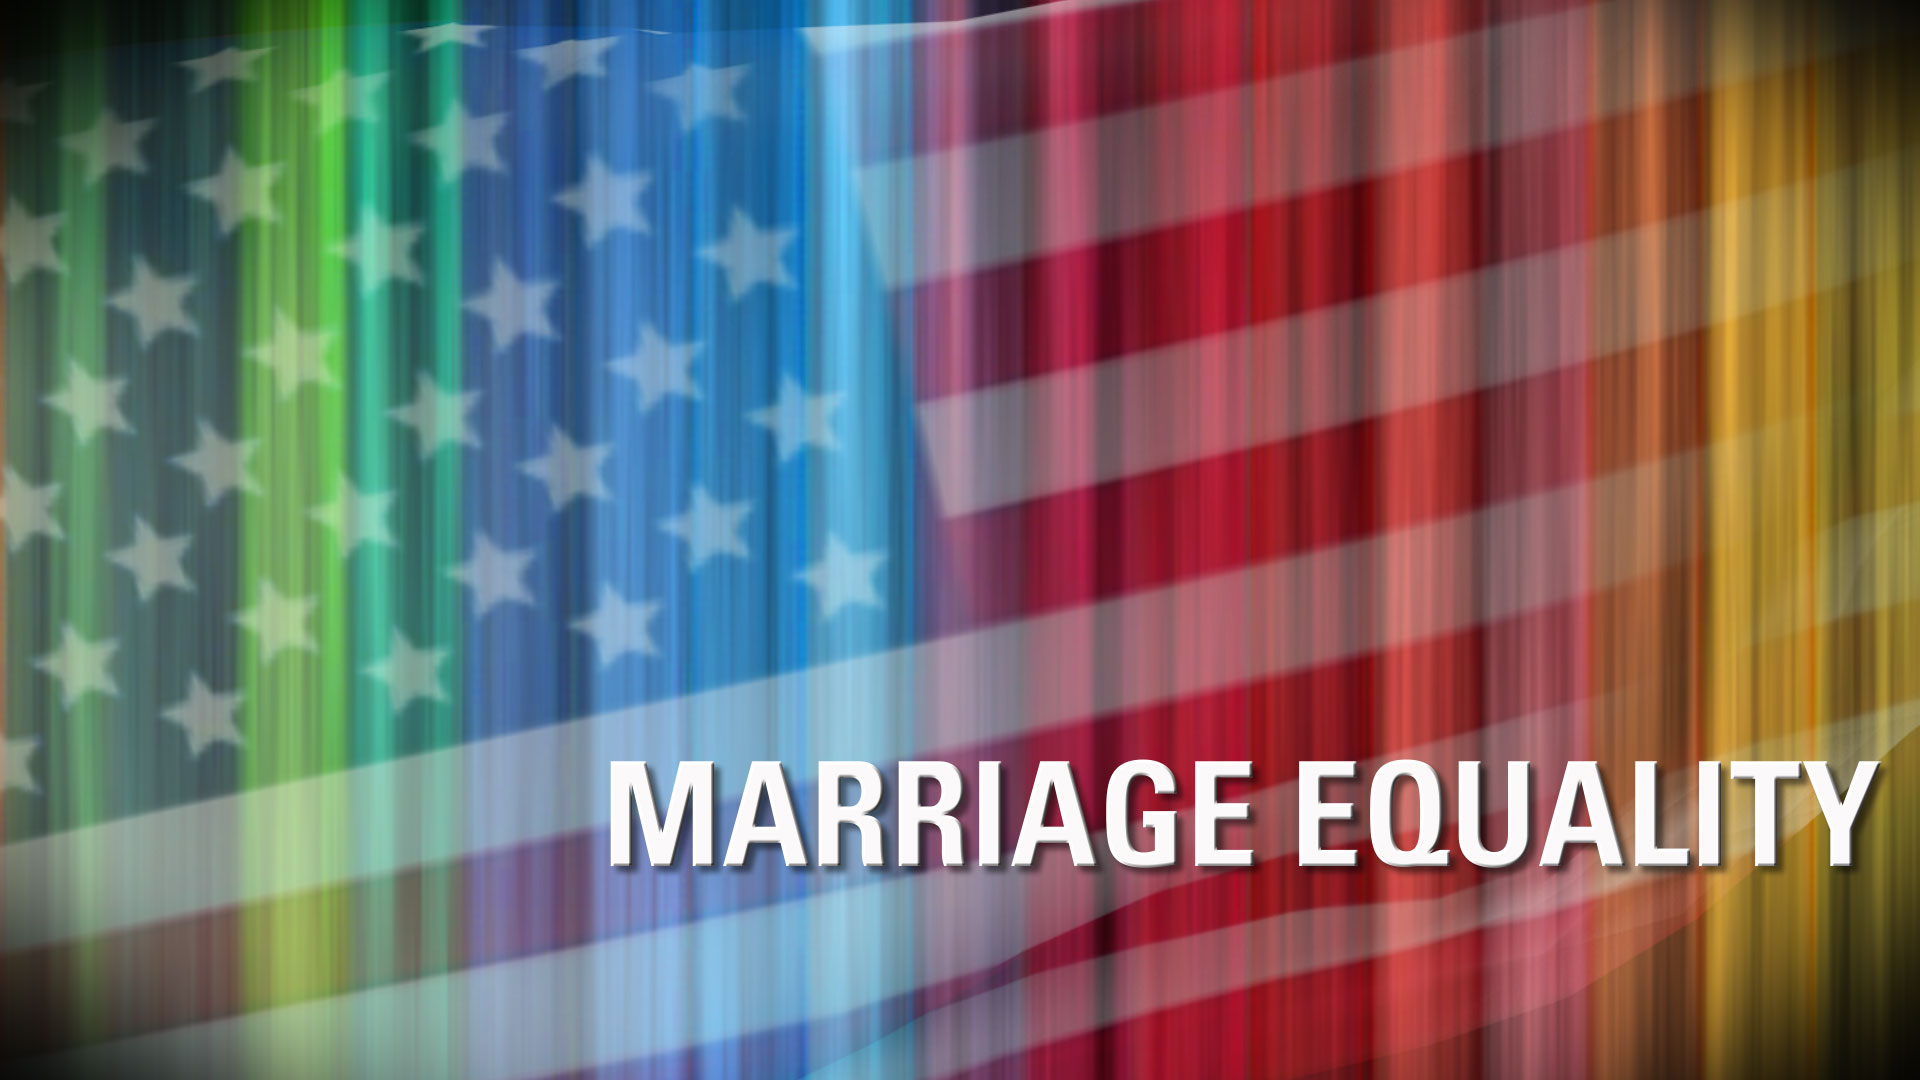 2015 – An Important Year for Marriage Equality